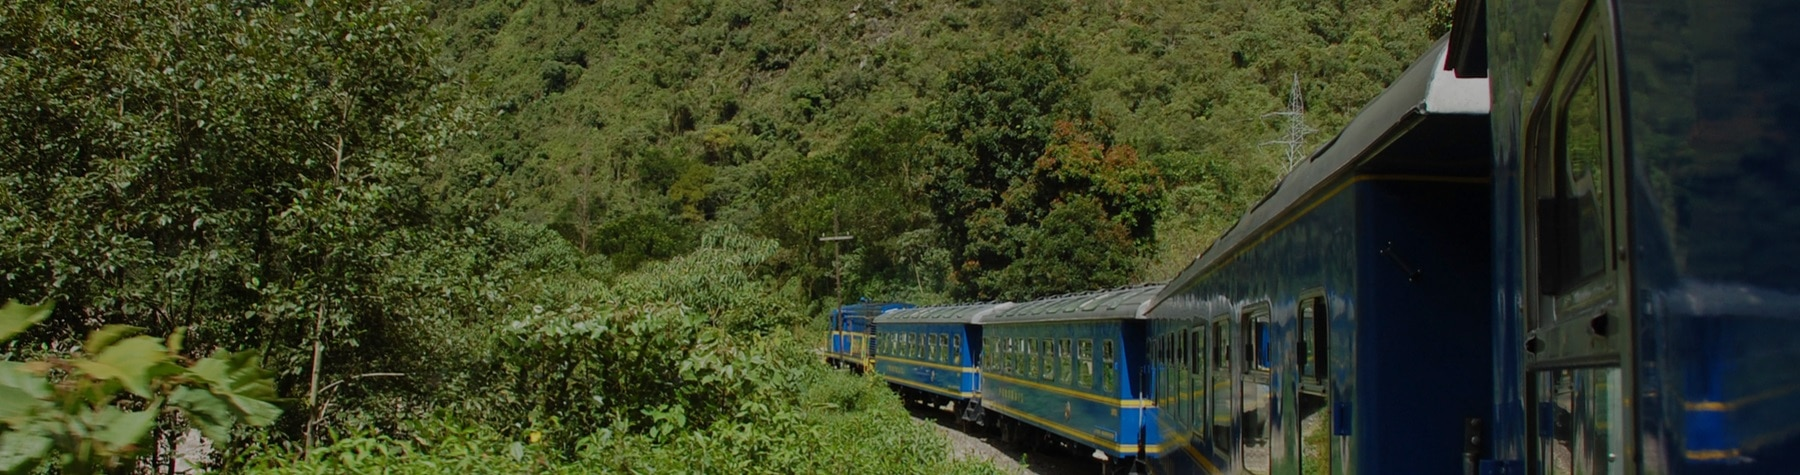 Is the Hiram Bingham Train Worth the Money? – Luxury Peru Travel